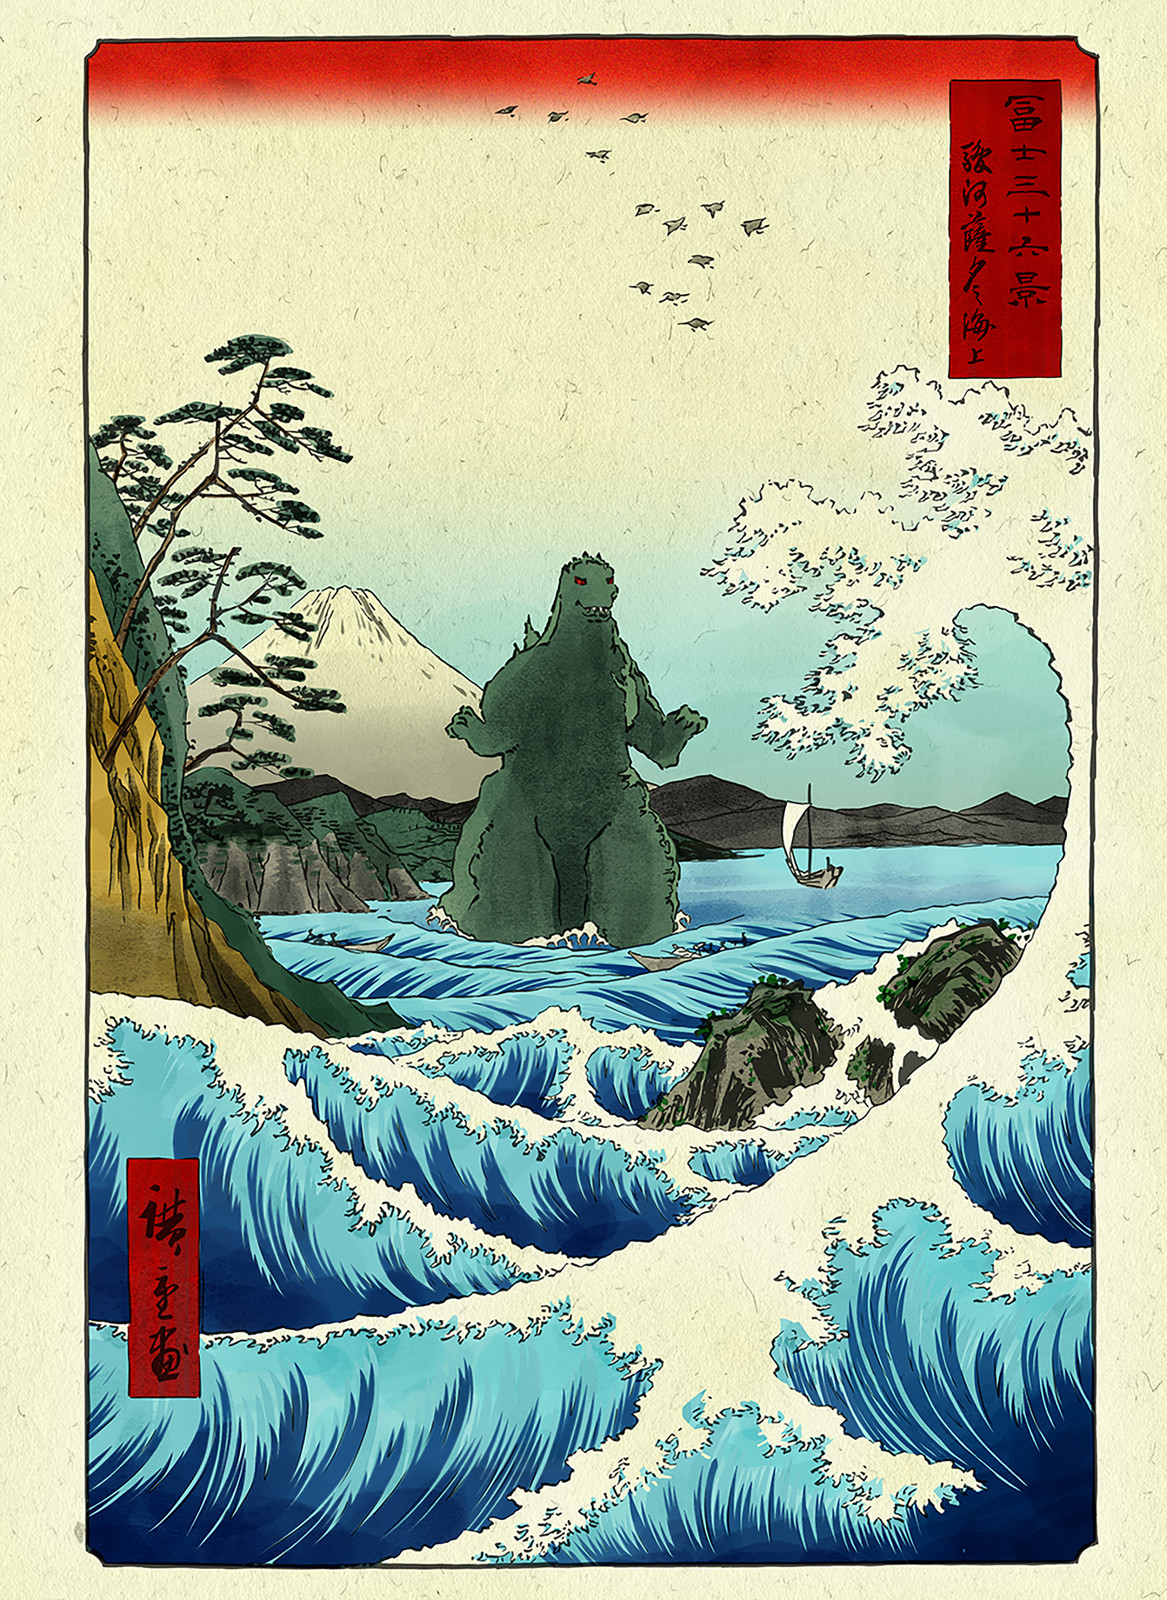 Kaiju Digital Woodcuts